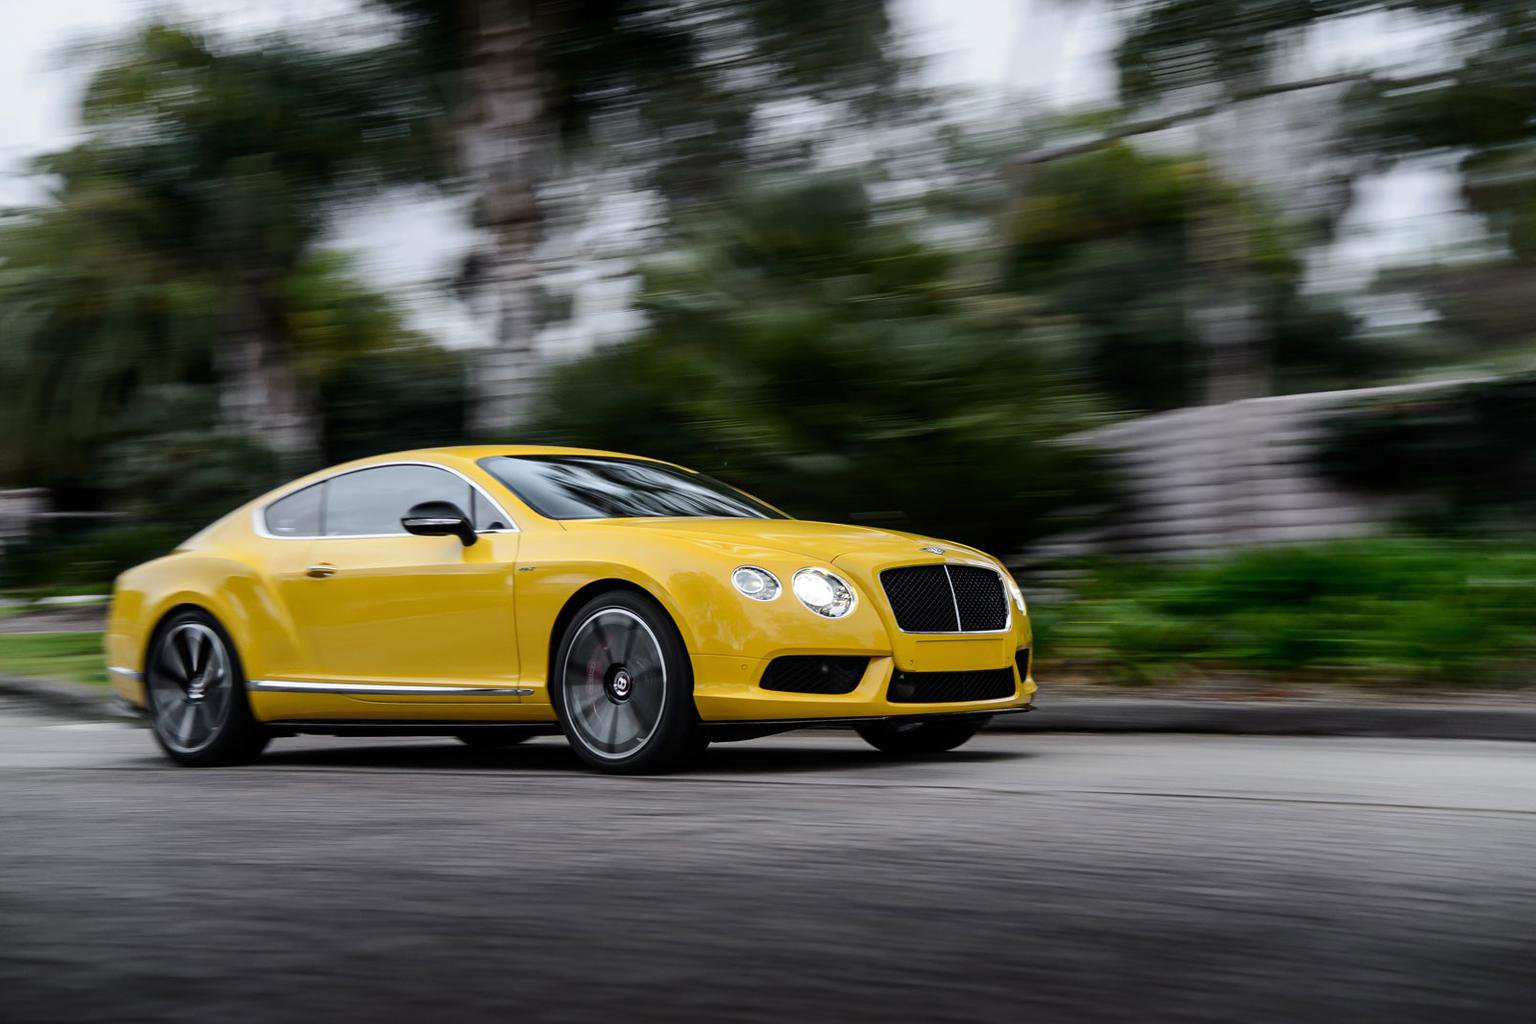 2014 Bentley Continental GT V8 S review